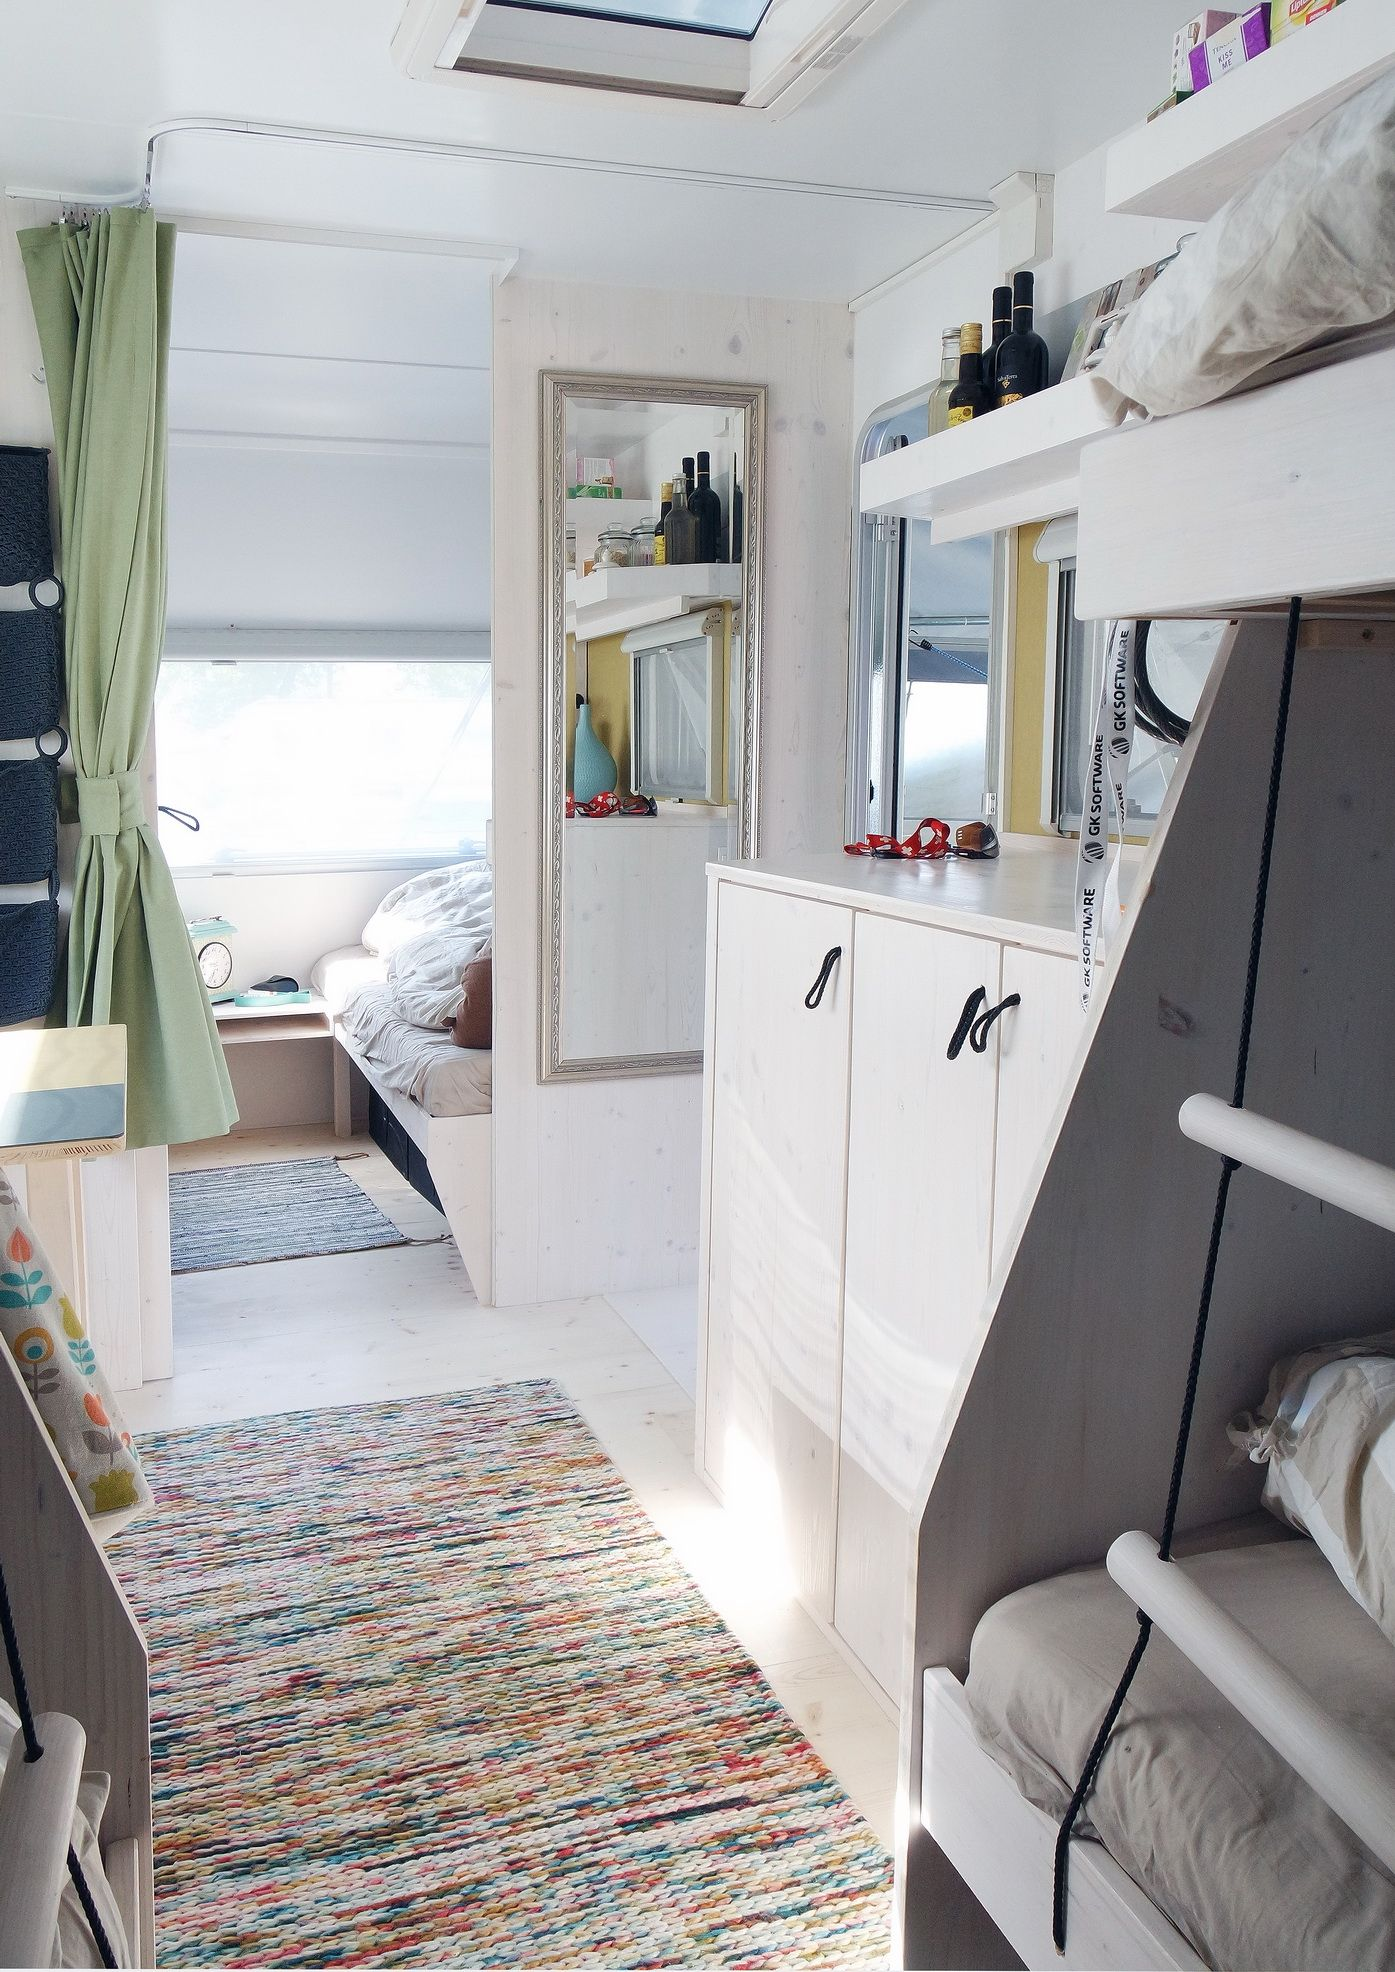 pin by sabrina lejeune on camping pinterest rv. Black Bedroom Furniture Sets. Home Design Ideas